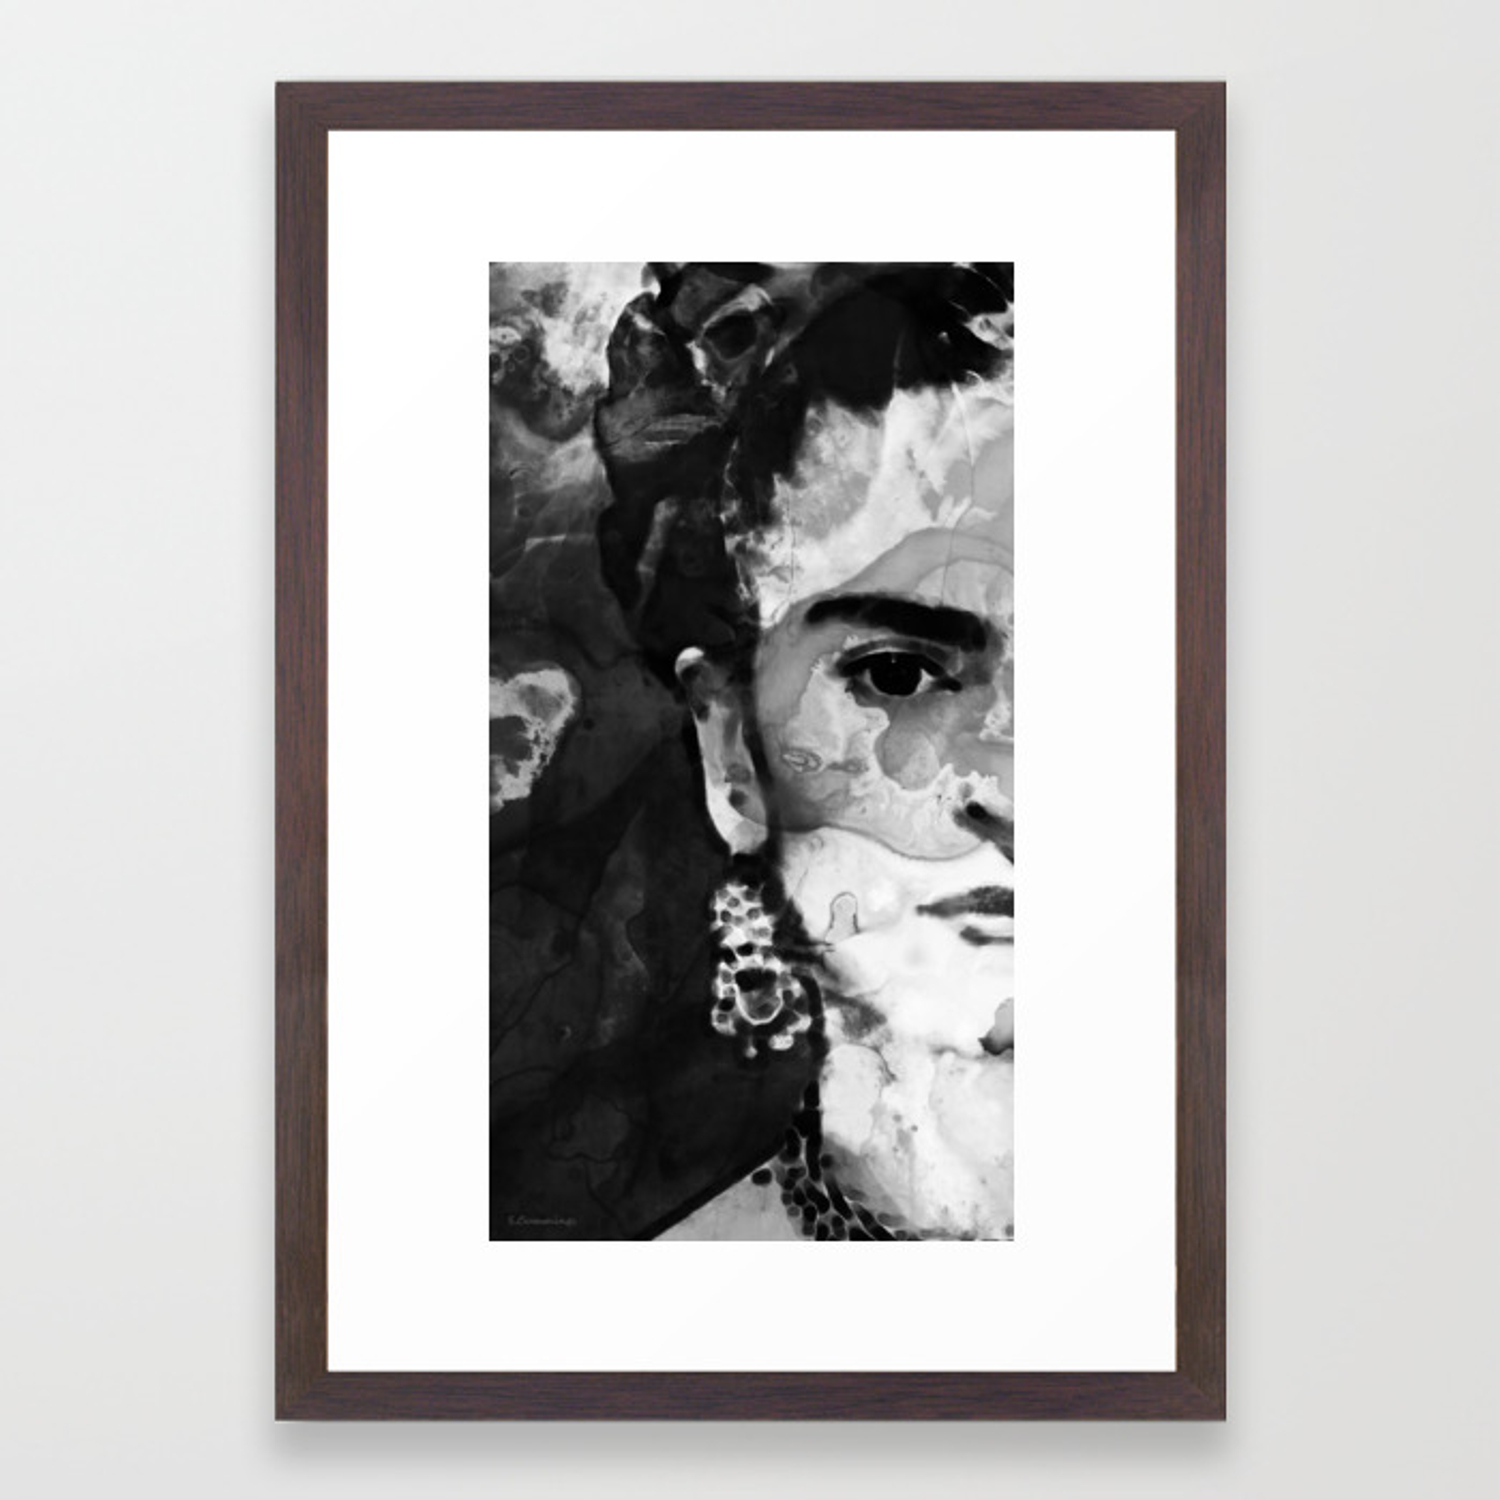 Black and white frida kahlo by sharon cummings framed art print by sharoncummings society6